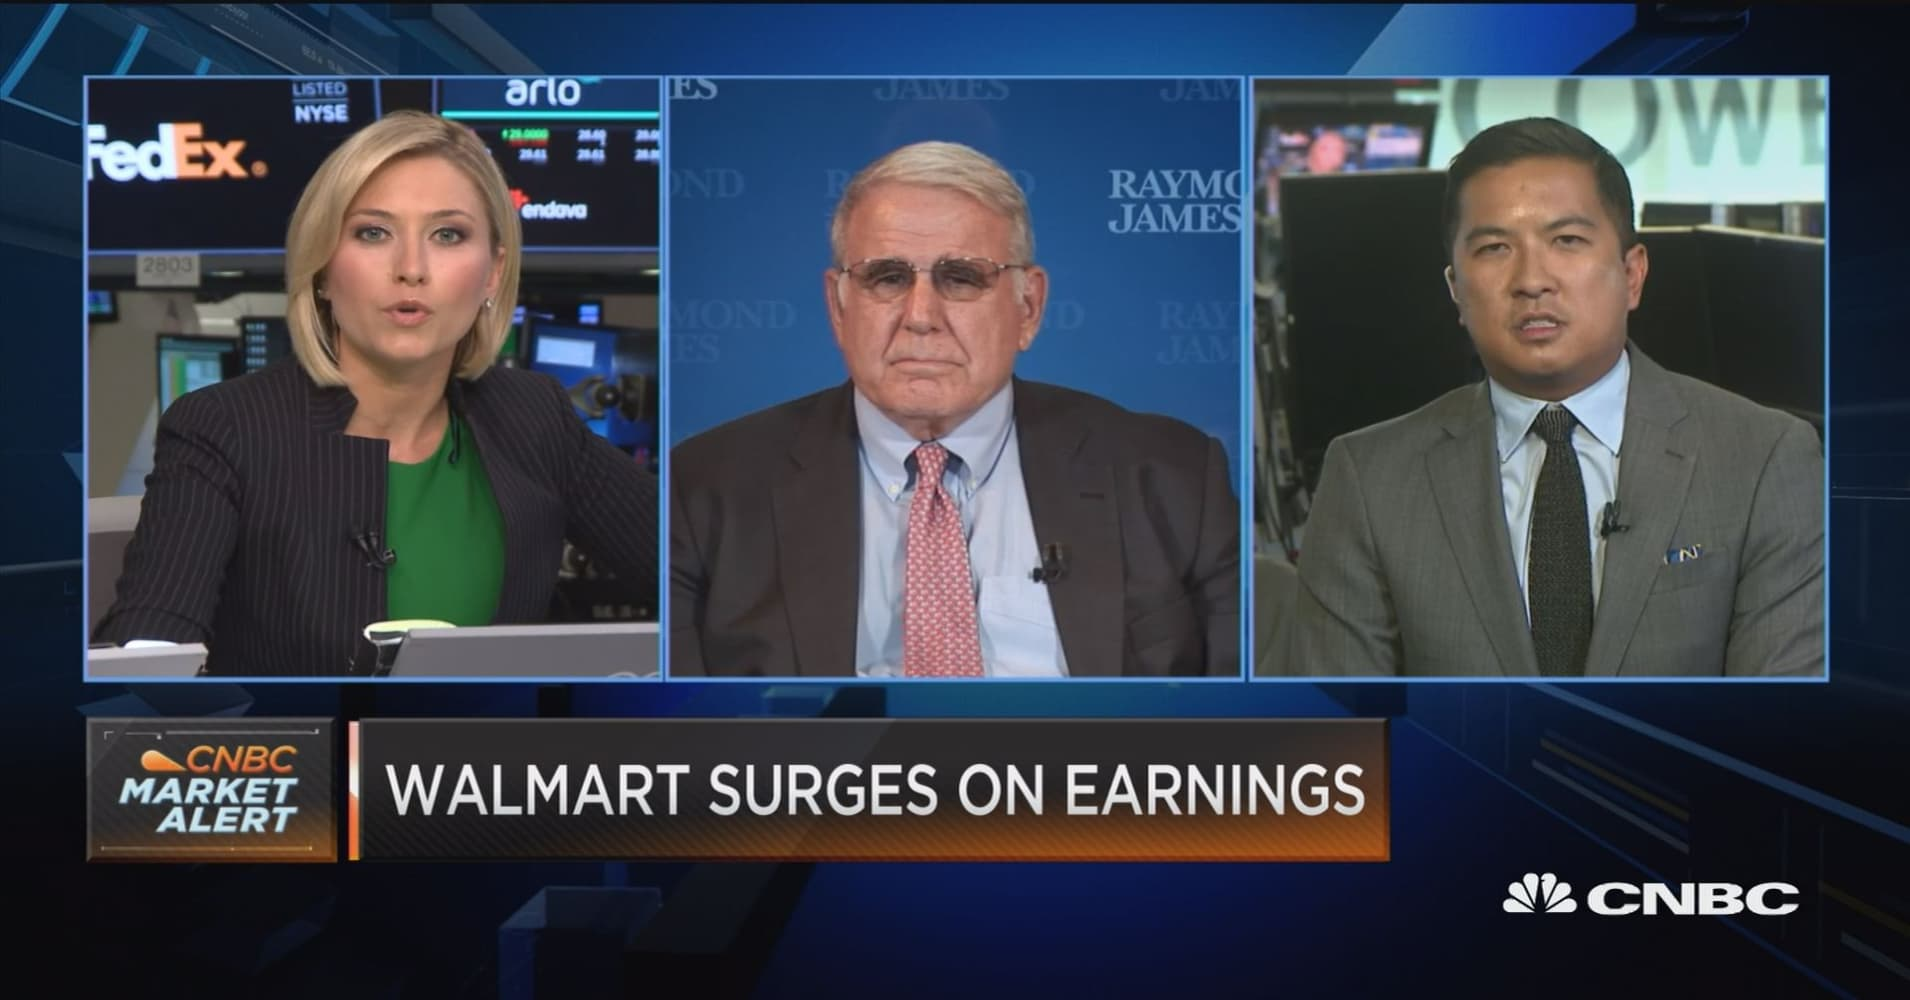 Bricks Plus Clicks The Real Story For Walmart Earnings Says Analyst Arlo Navy Women 39